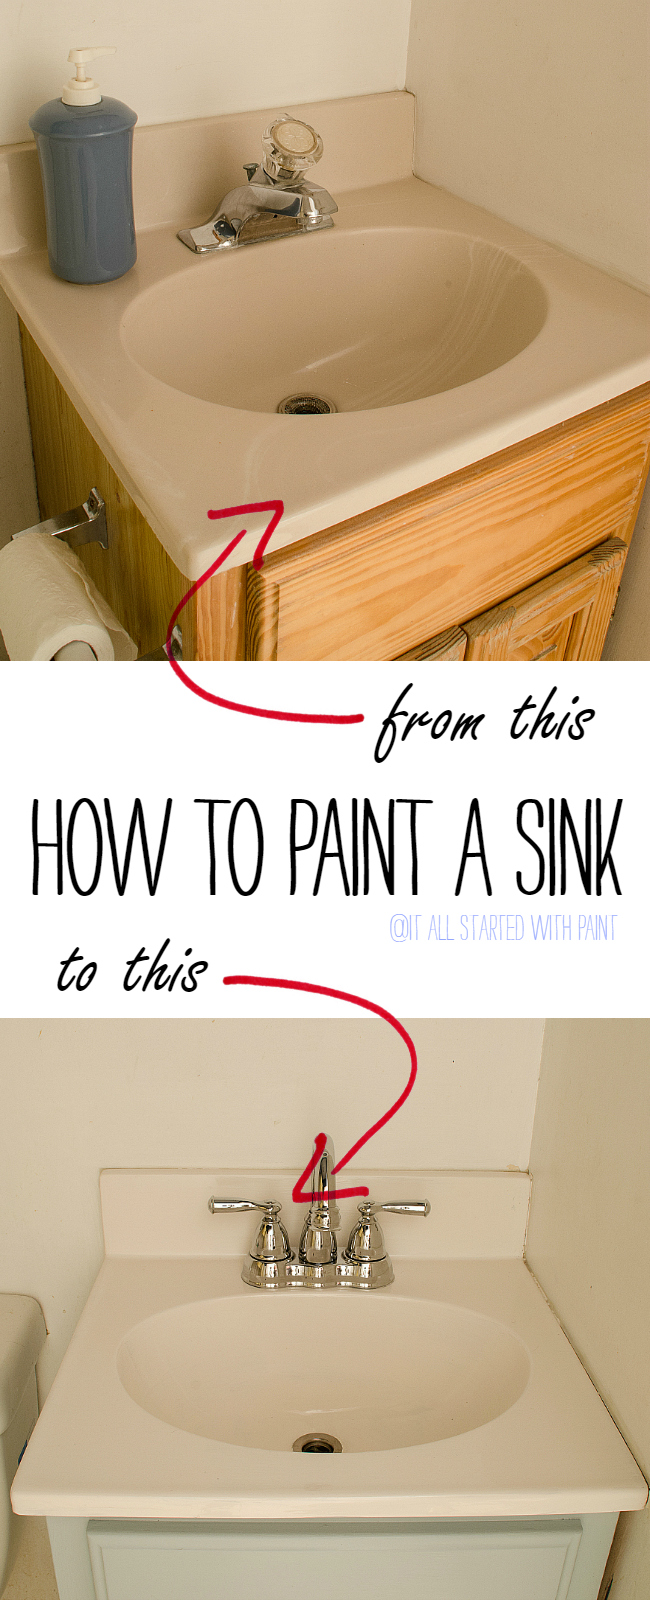 Paint A Sink: How To Paint A Sink Tutorial